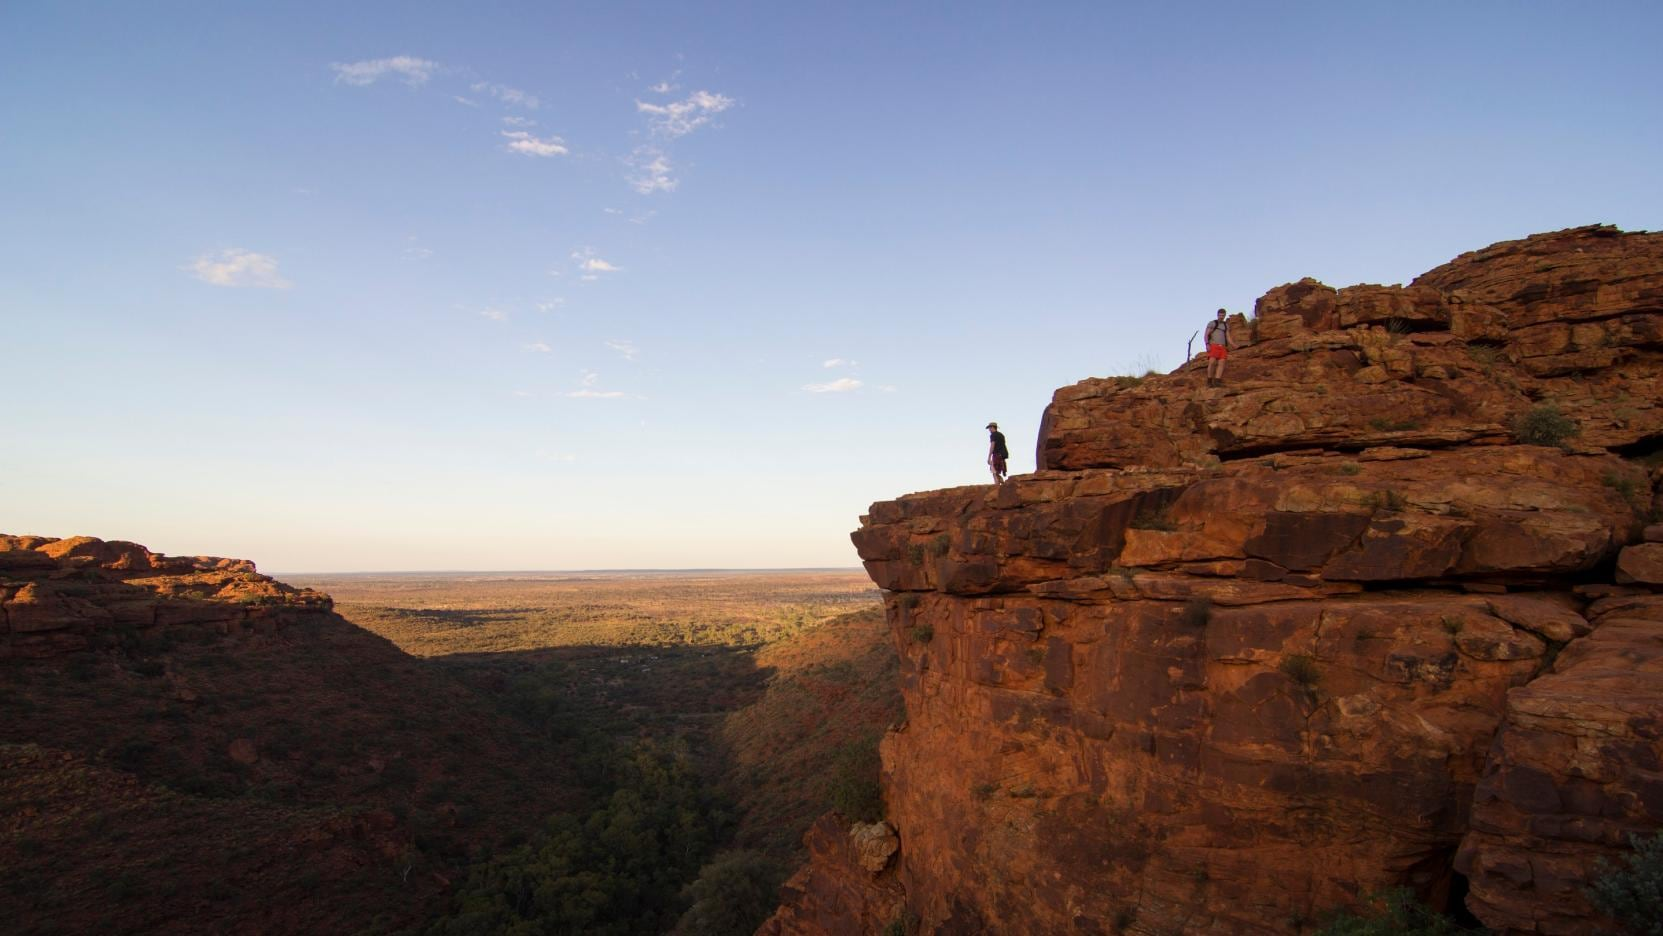 Rim Walk, Kings Canyon, NT. © Shaana McNaught, Tourism NT